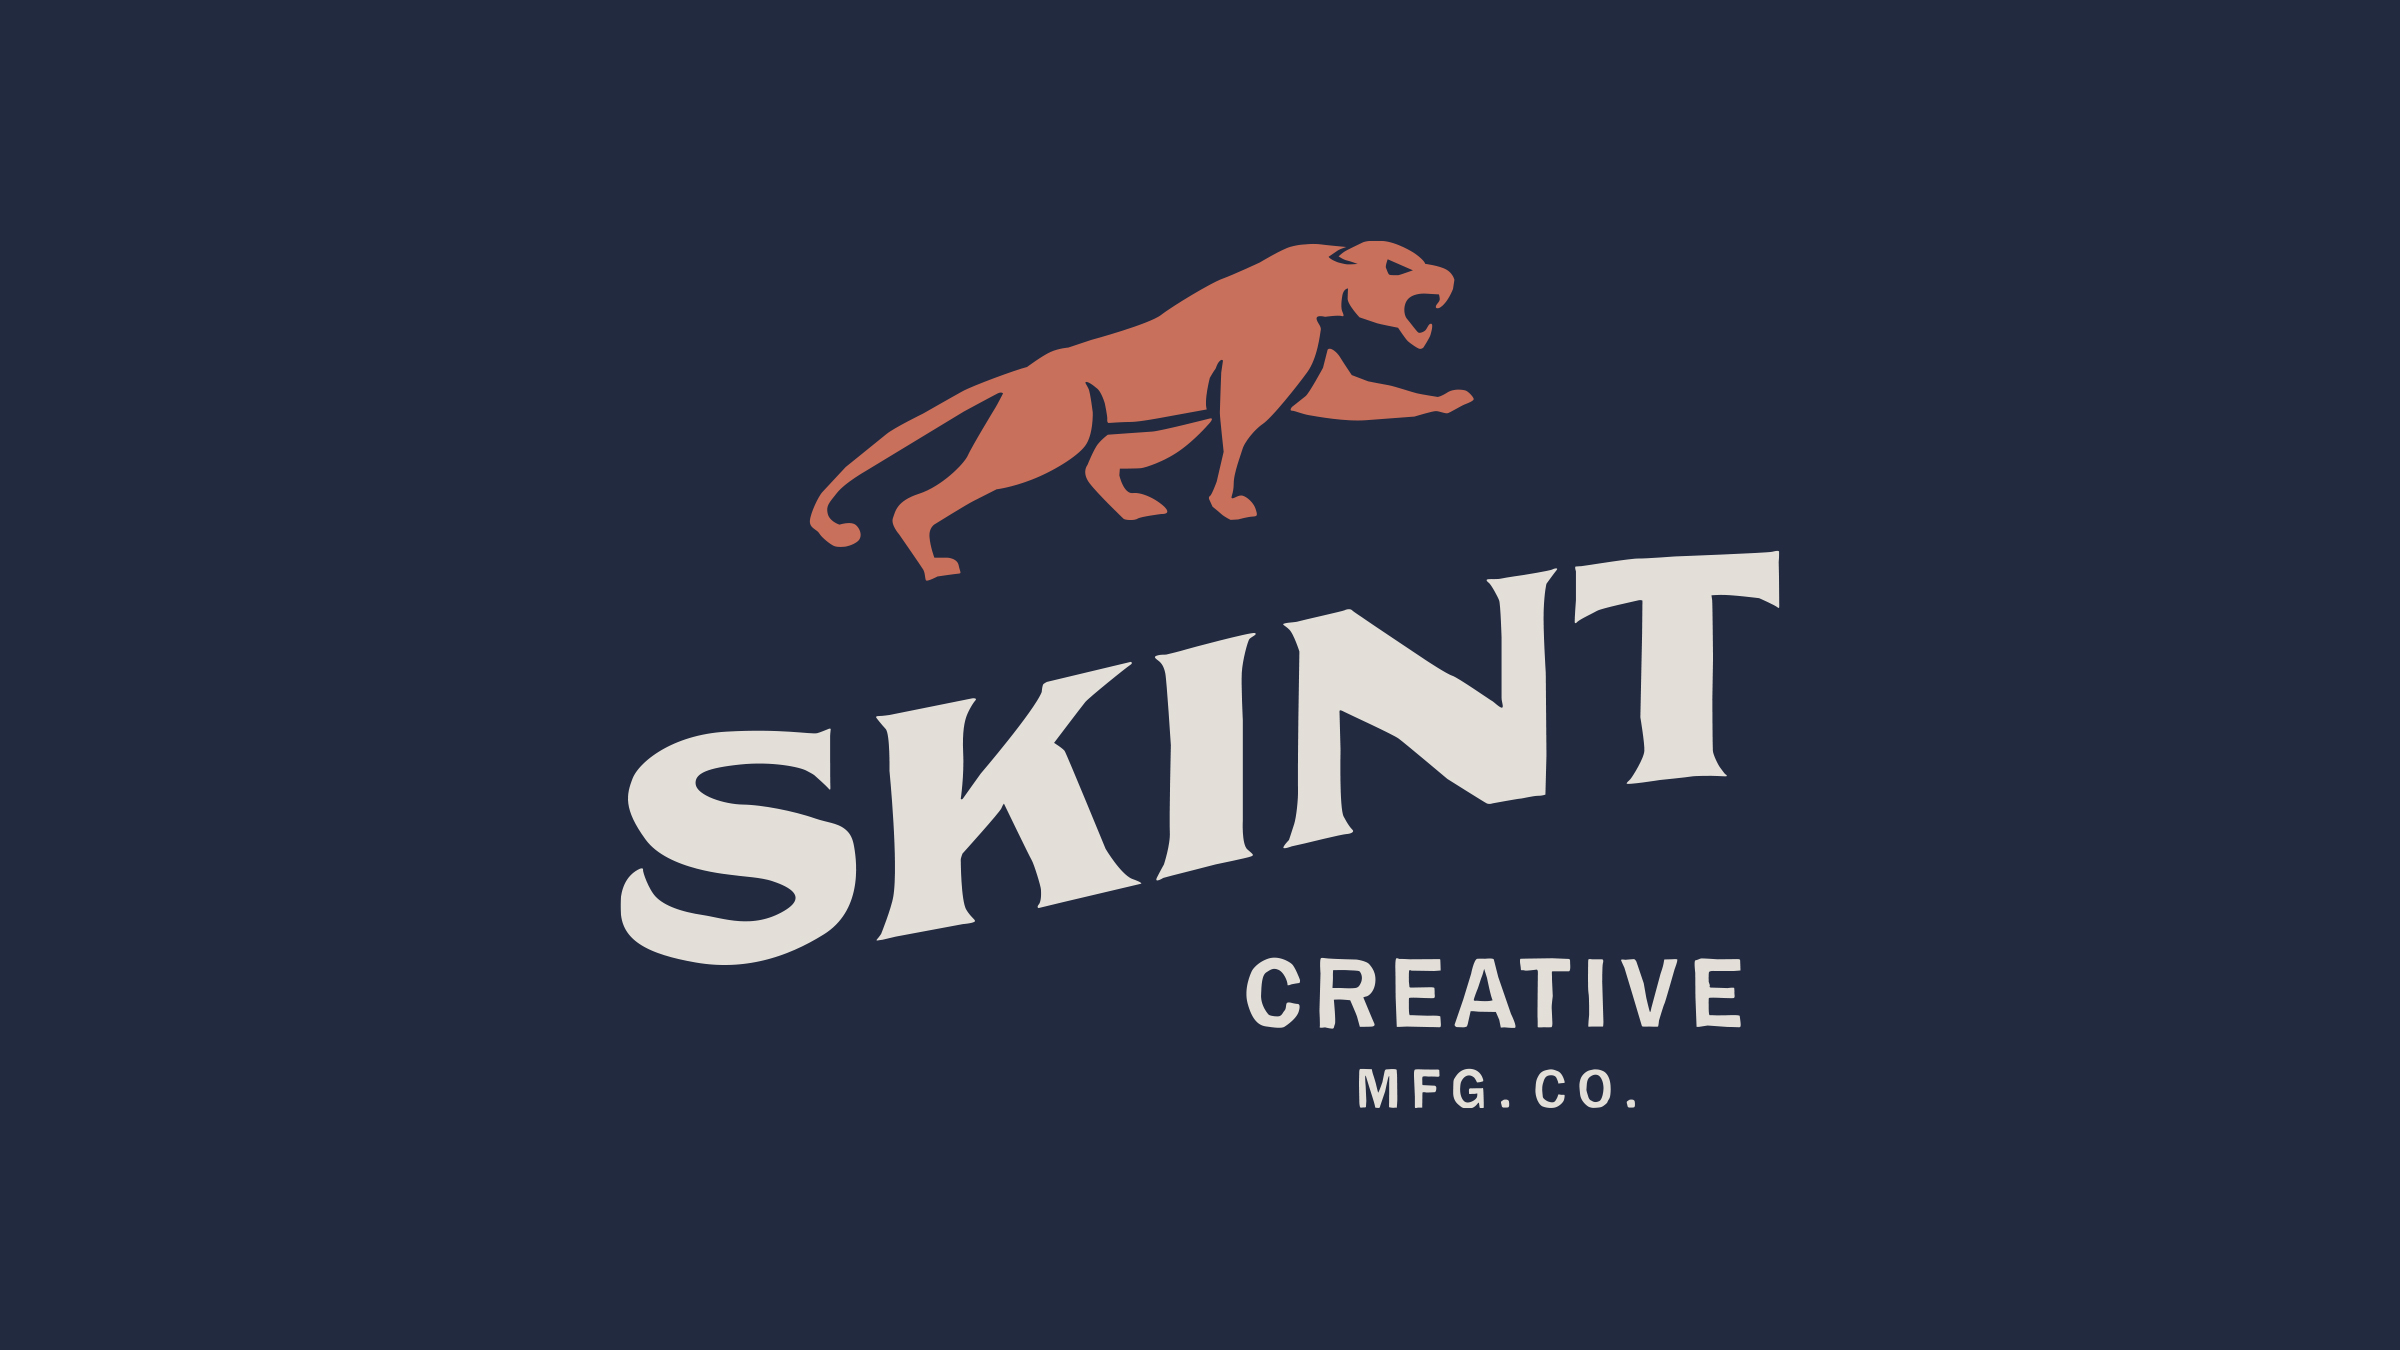 Skint Creative brand logo cream and orange on blue